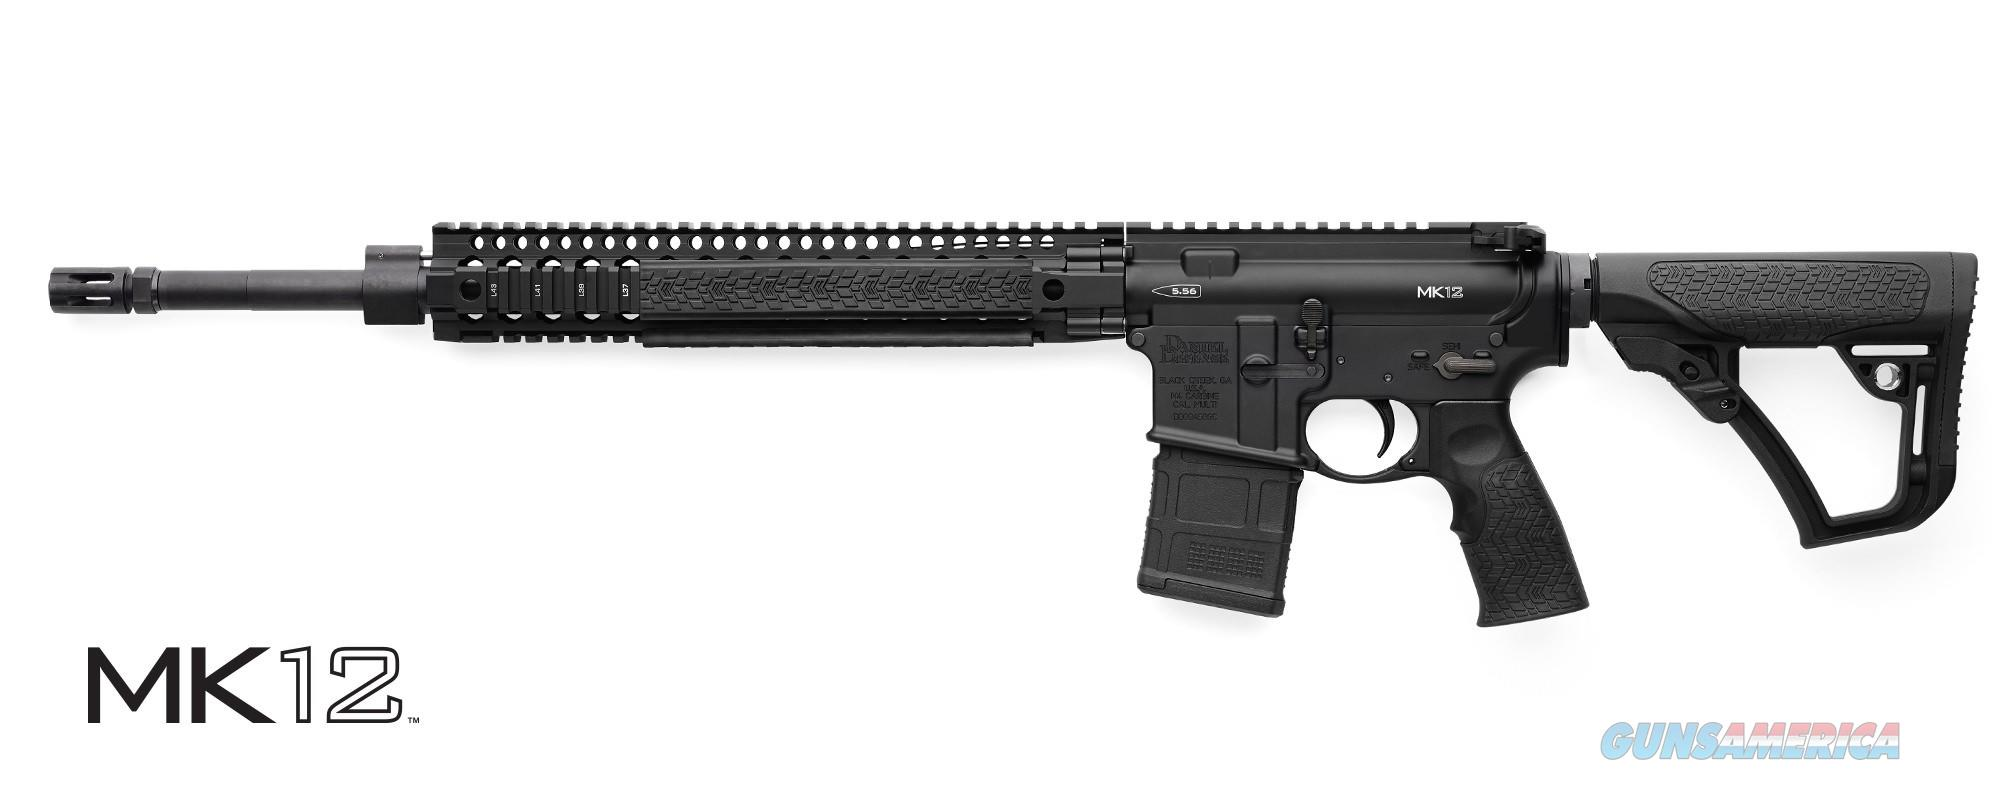 "NIB Daniel Defense Mk12 18"" 5.56 02-142-13175-047  Guns > Rifles > Daniel Defense > Complete Rifles"